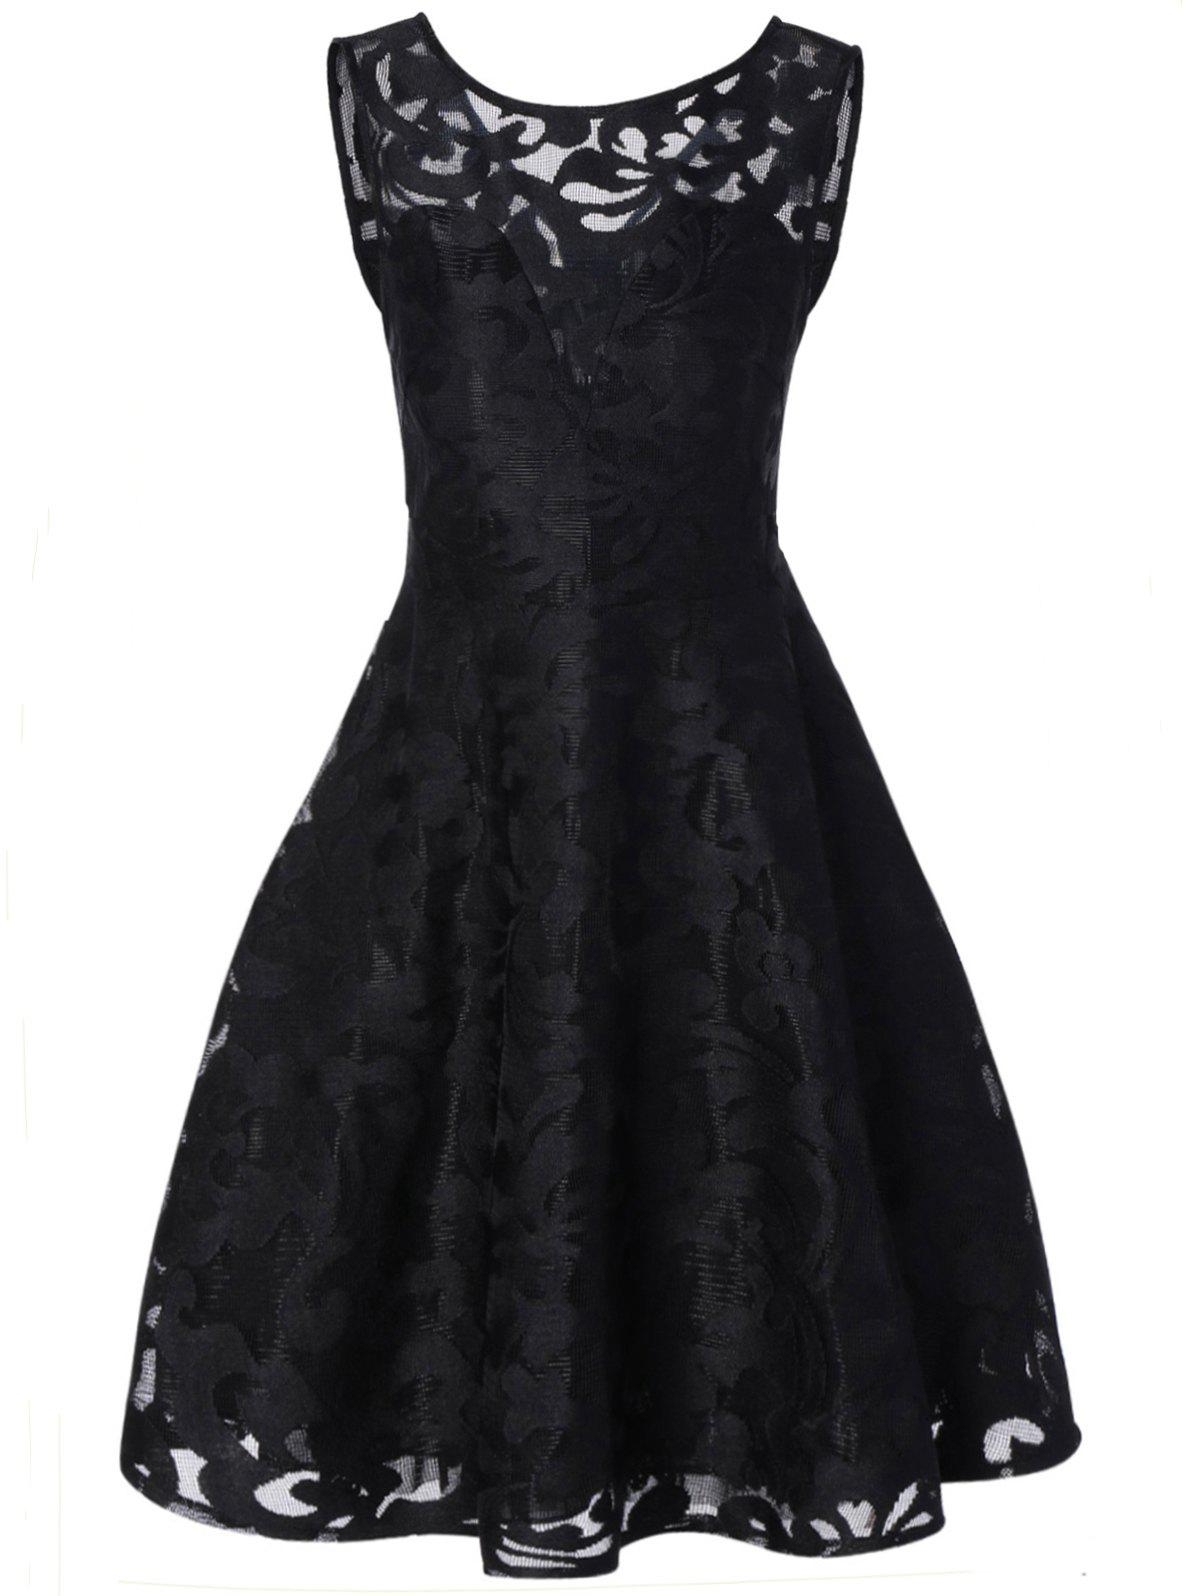 Lace Plus Size Holiday Short Cocktail DressWOMEN<br><br>Size: 5XL; Color: BLACK; Style: Vintage; Material: Polyester; Silhouette: A-Line; Dresses Length: Mid-Calf; Neckline: Round Collar; Sleeve Length: Sleeveless; Pattern Type: Solid; With Belt: No; Season: Fall; Weight: 0.2570kg; Package Contents: 1 x Dress;